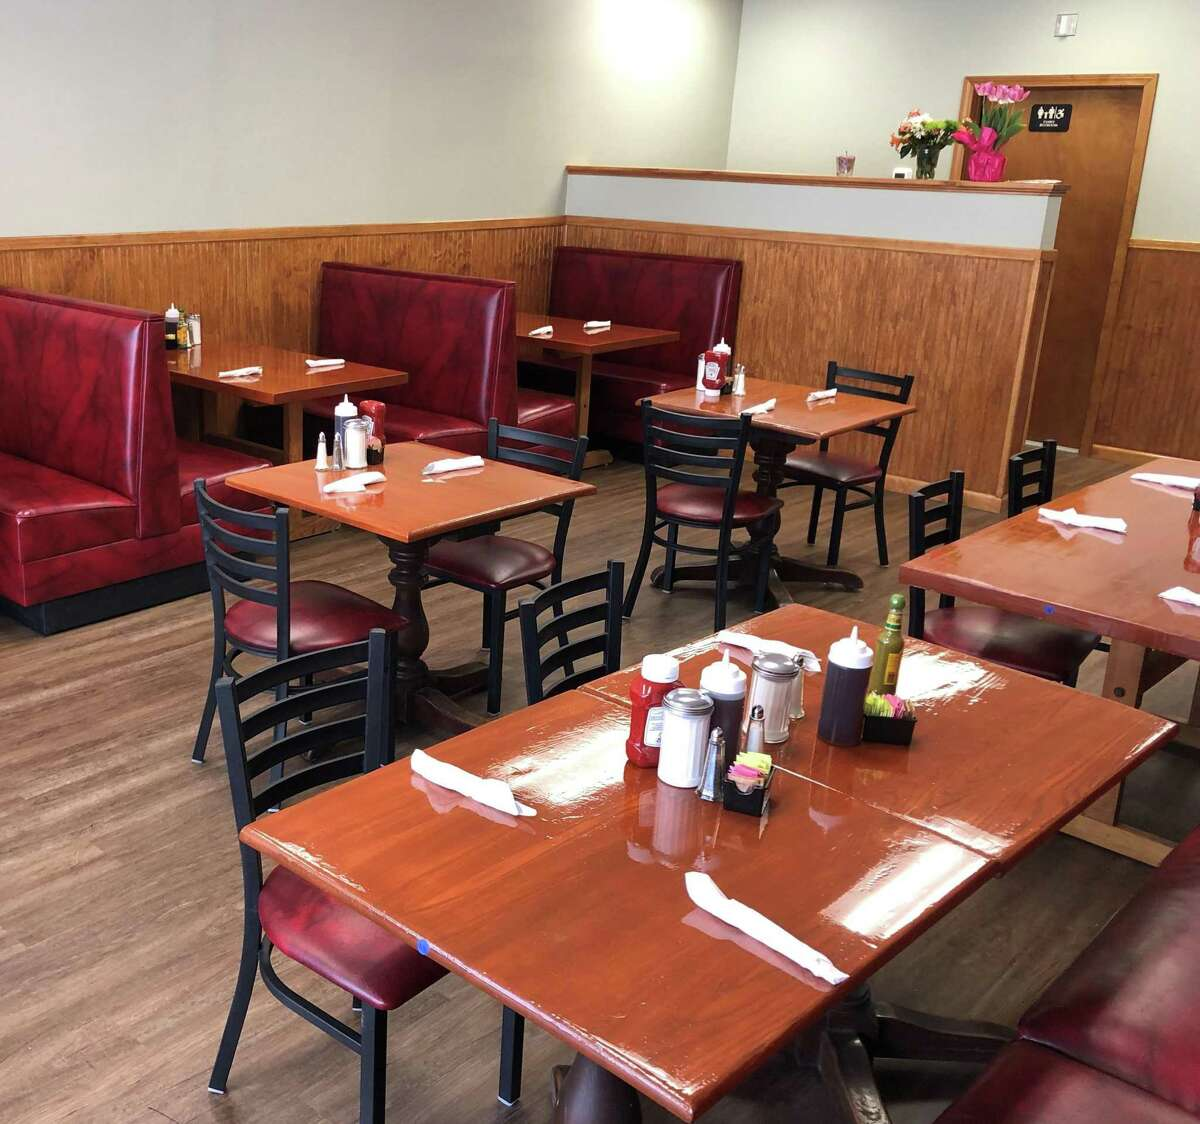 A portion of the expanded dining area at Johana's Restaurant on Main Street in New Milford. The eatery recently underwent a complete renovation and expansion, bringing seating from 28 to 56.